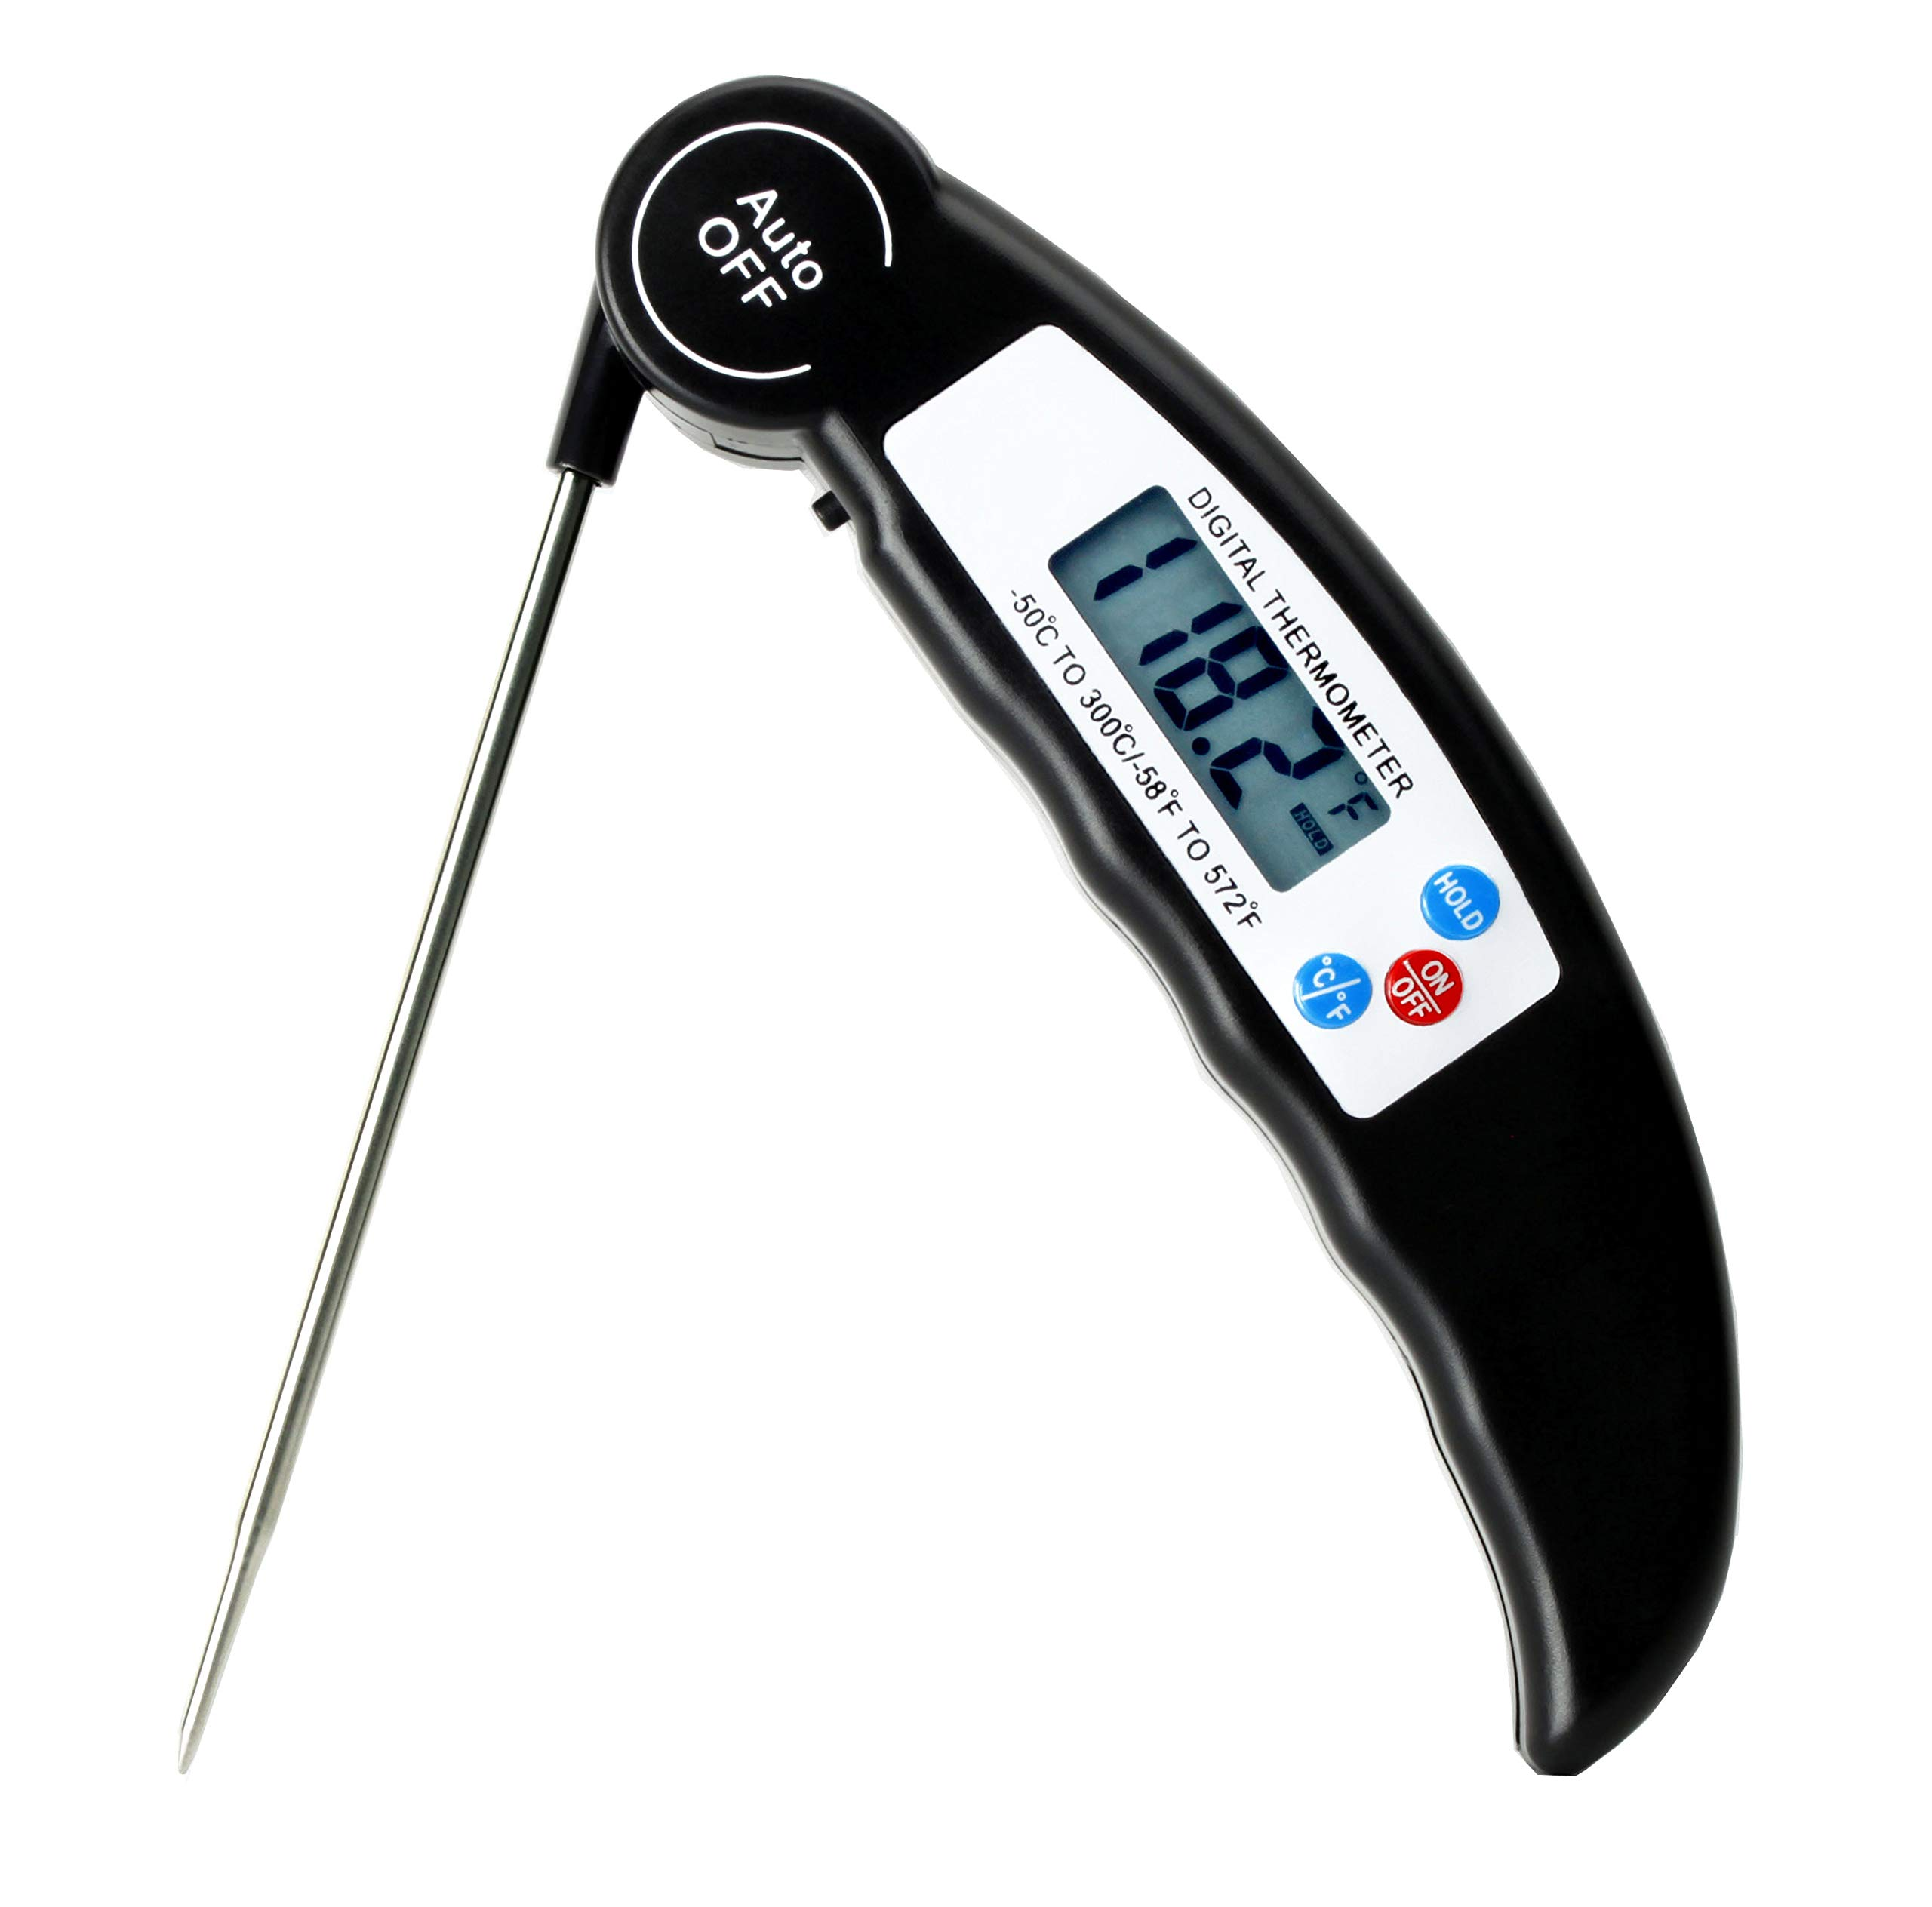 Digital Meat Thermometer Instant Read/waterproof/with Magnetic Base/Foldable/Pocket Size Meat Thermometer for Grilling Food Thermometer for BBQ/Baking/Candy/Milk/Tea/Beer/Indoor Outdoor Use